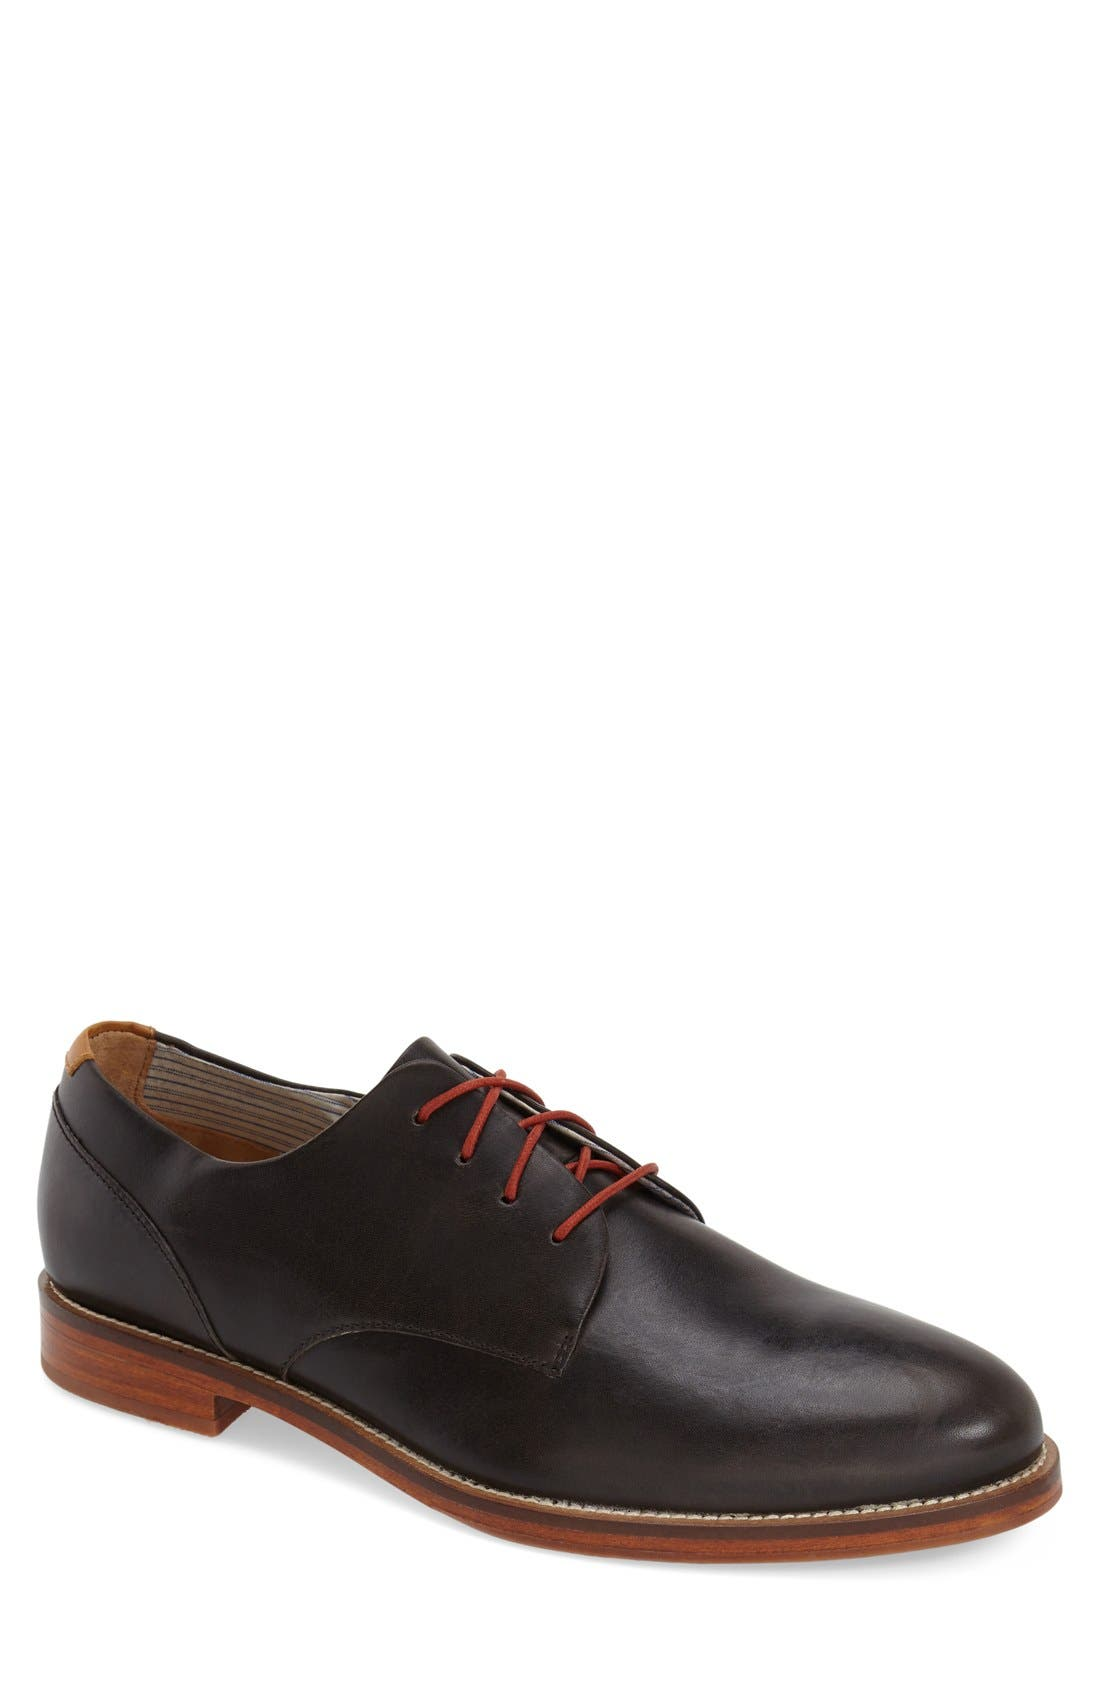 'William Plus' Plain Toe Derby,                         Main,                         color, 019